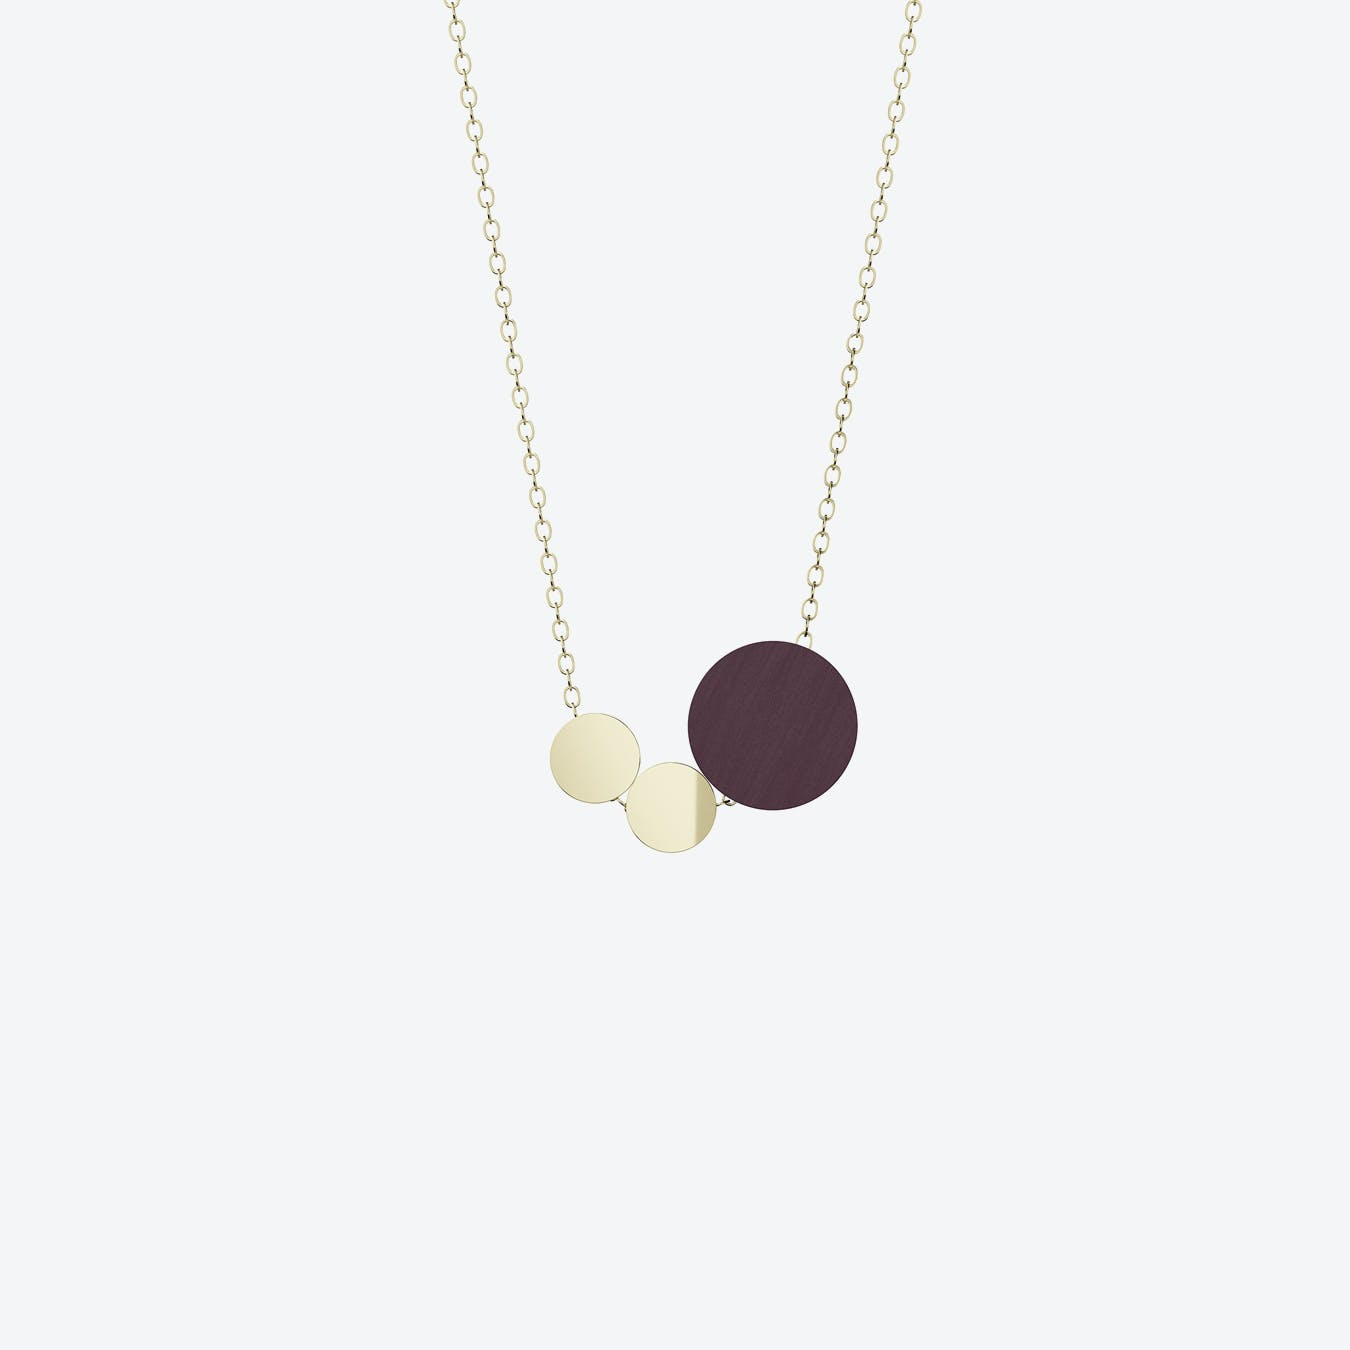 Syntaks Necklace in Plum Wood & Brass/Gold